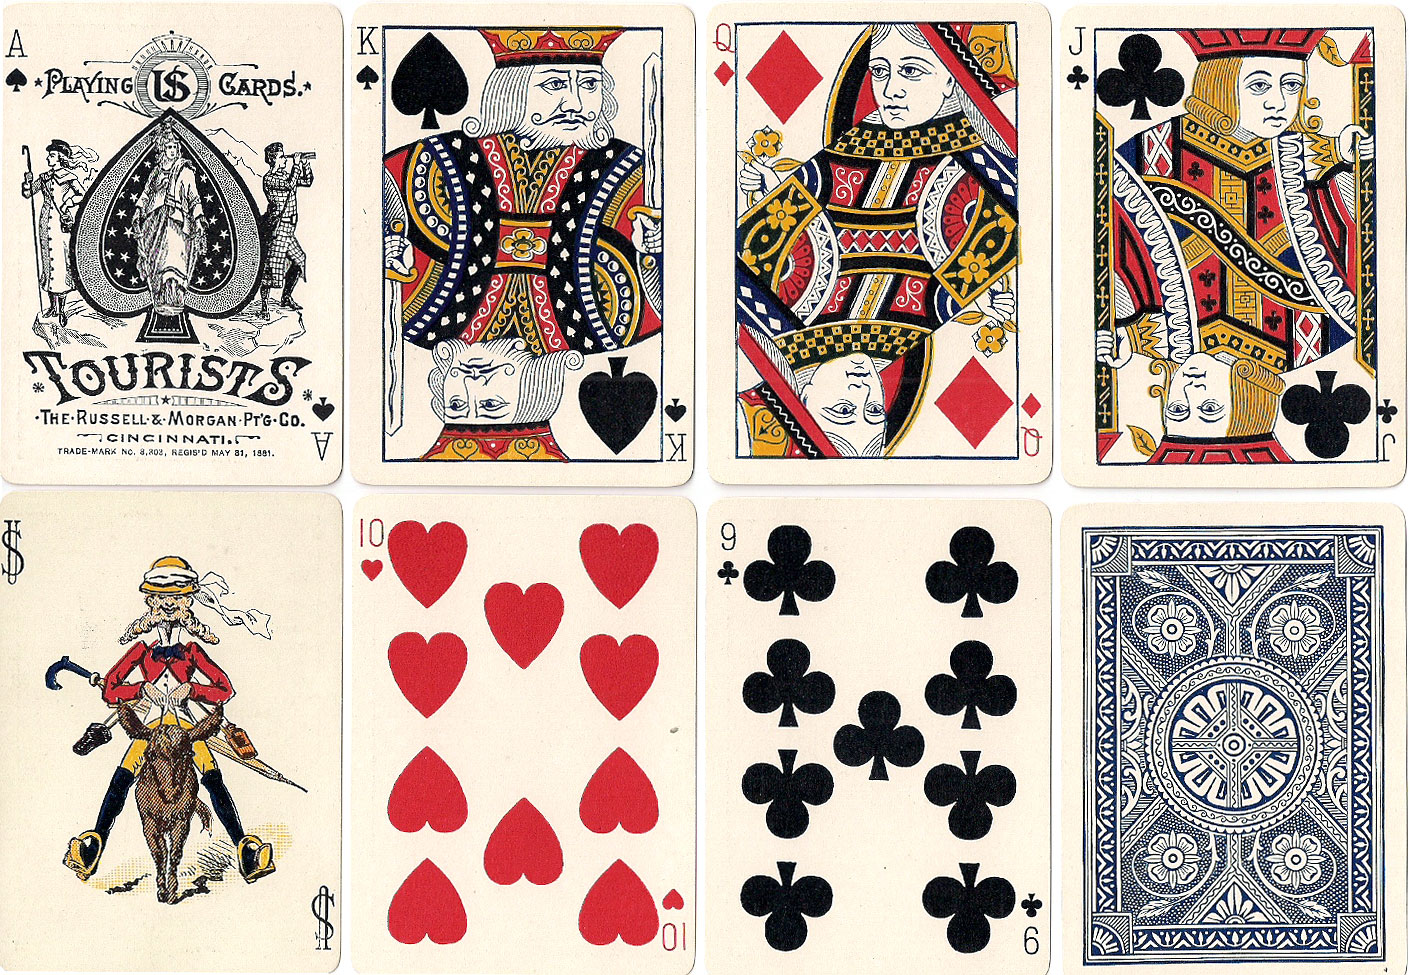 Tourists No.155 playing cards manufactured by the Russell & Morgan Printing Co., c.1886